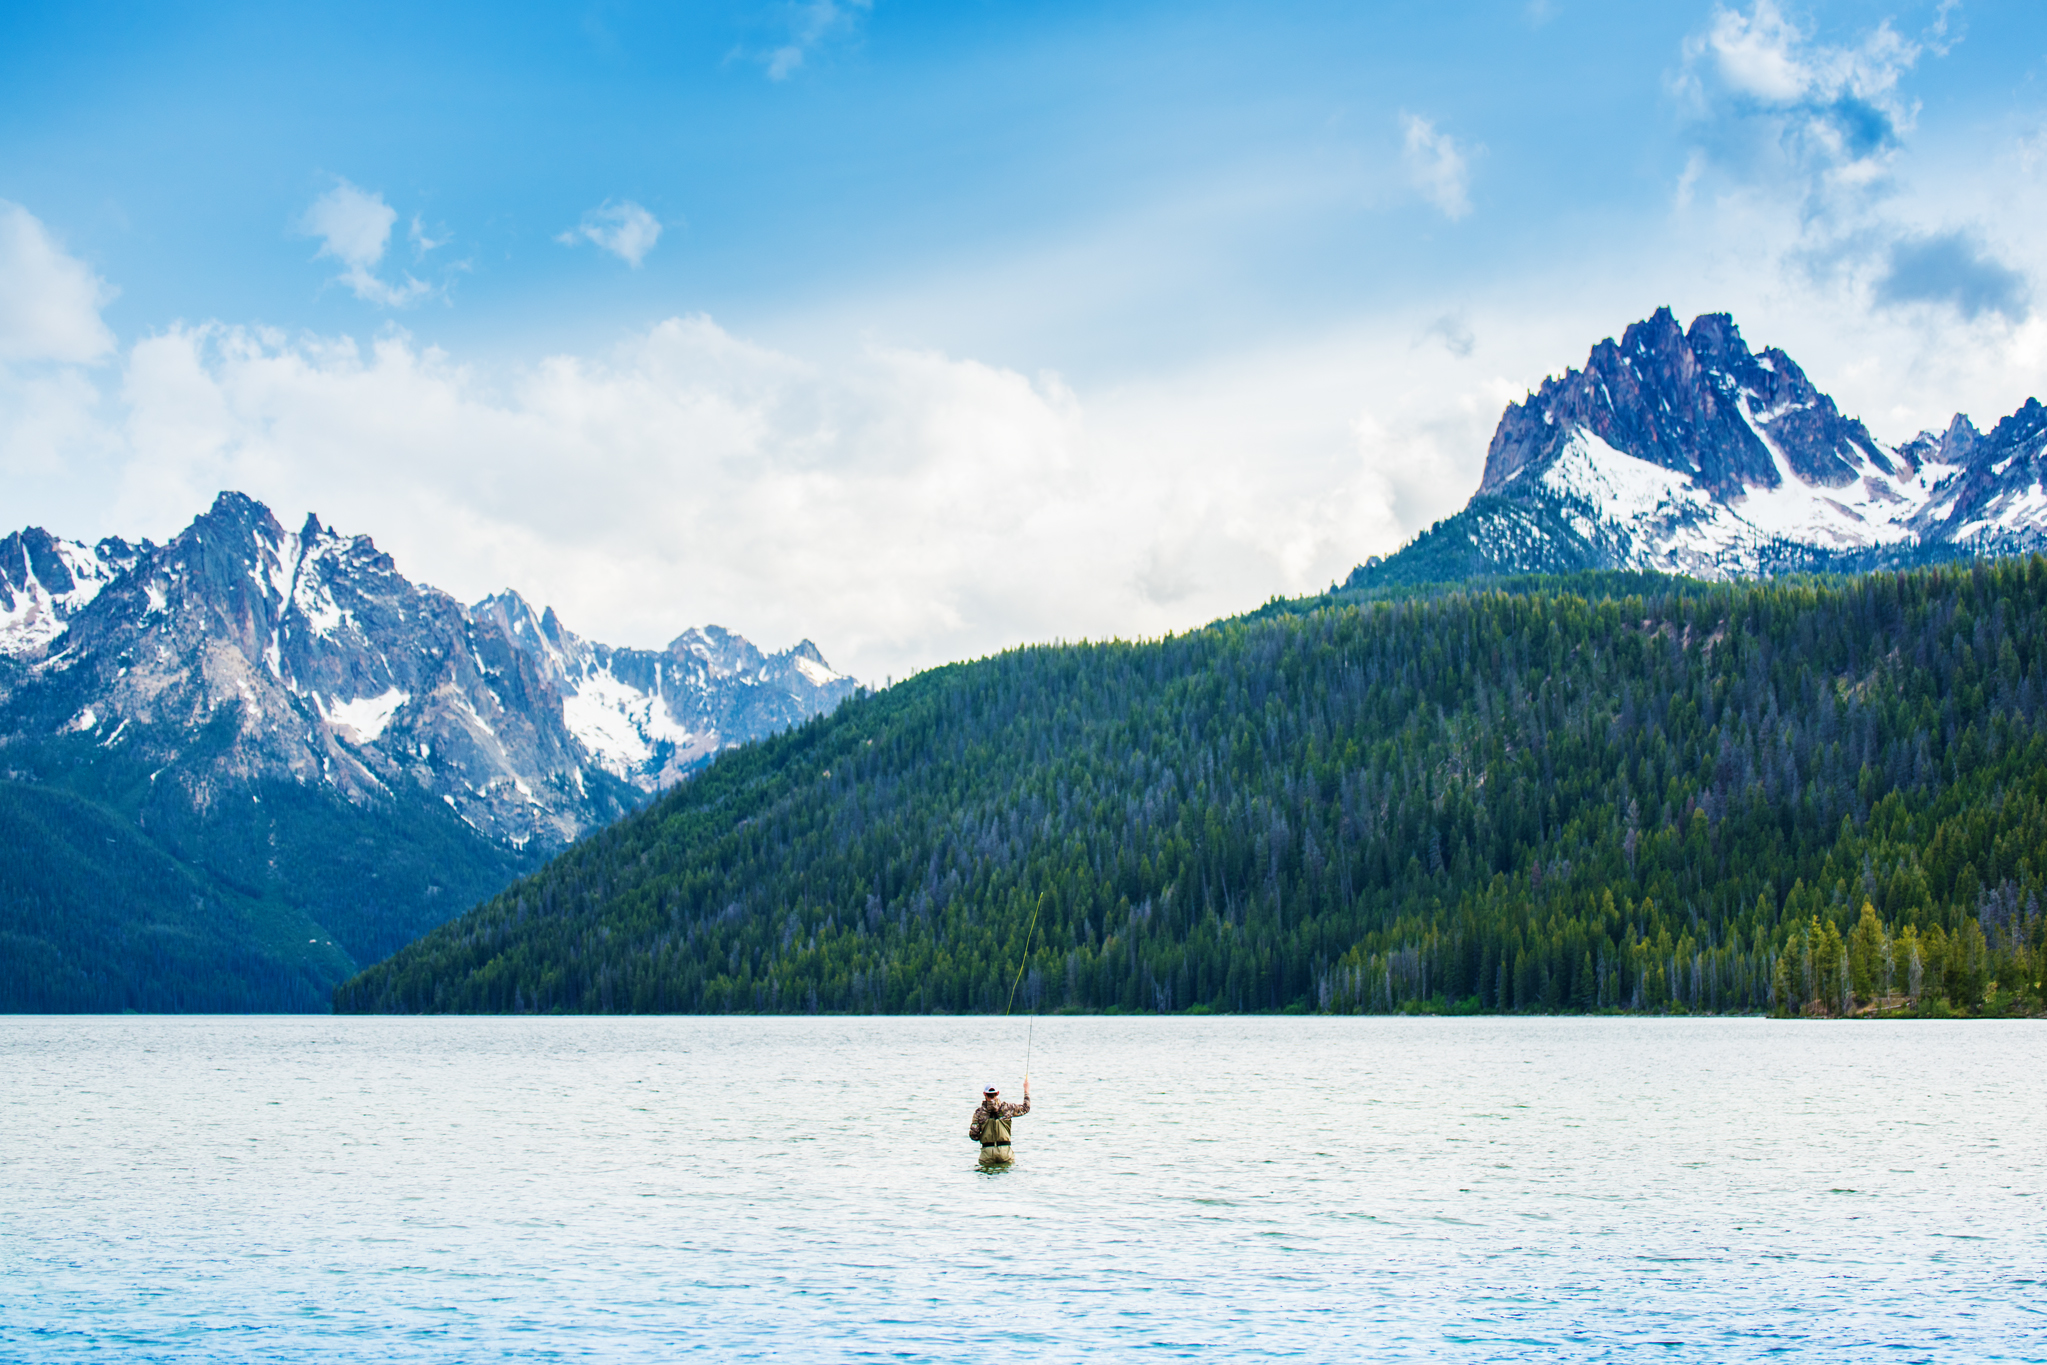 Fly Fishing, Redfish Lake, Stanley, Idaho. Photo Credit: Idaho Tourism